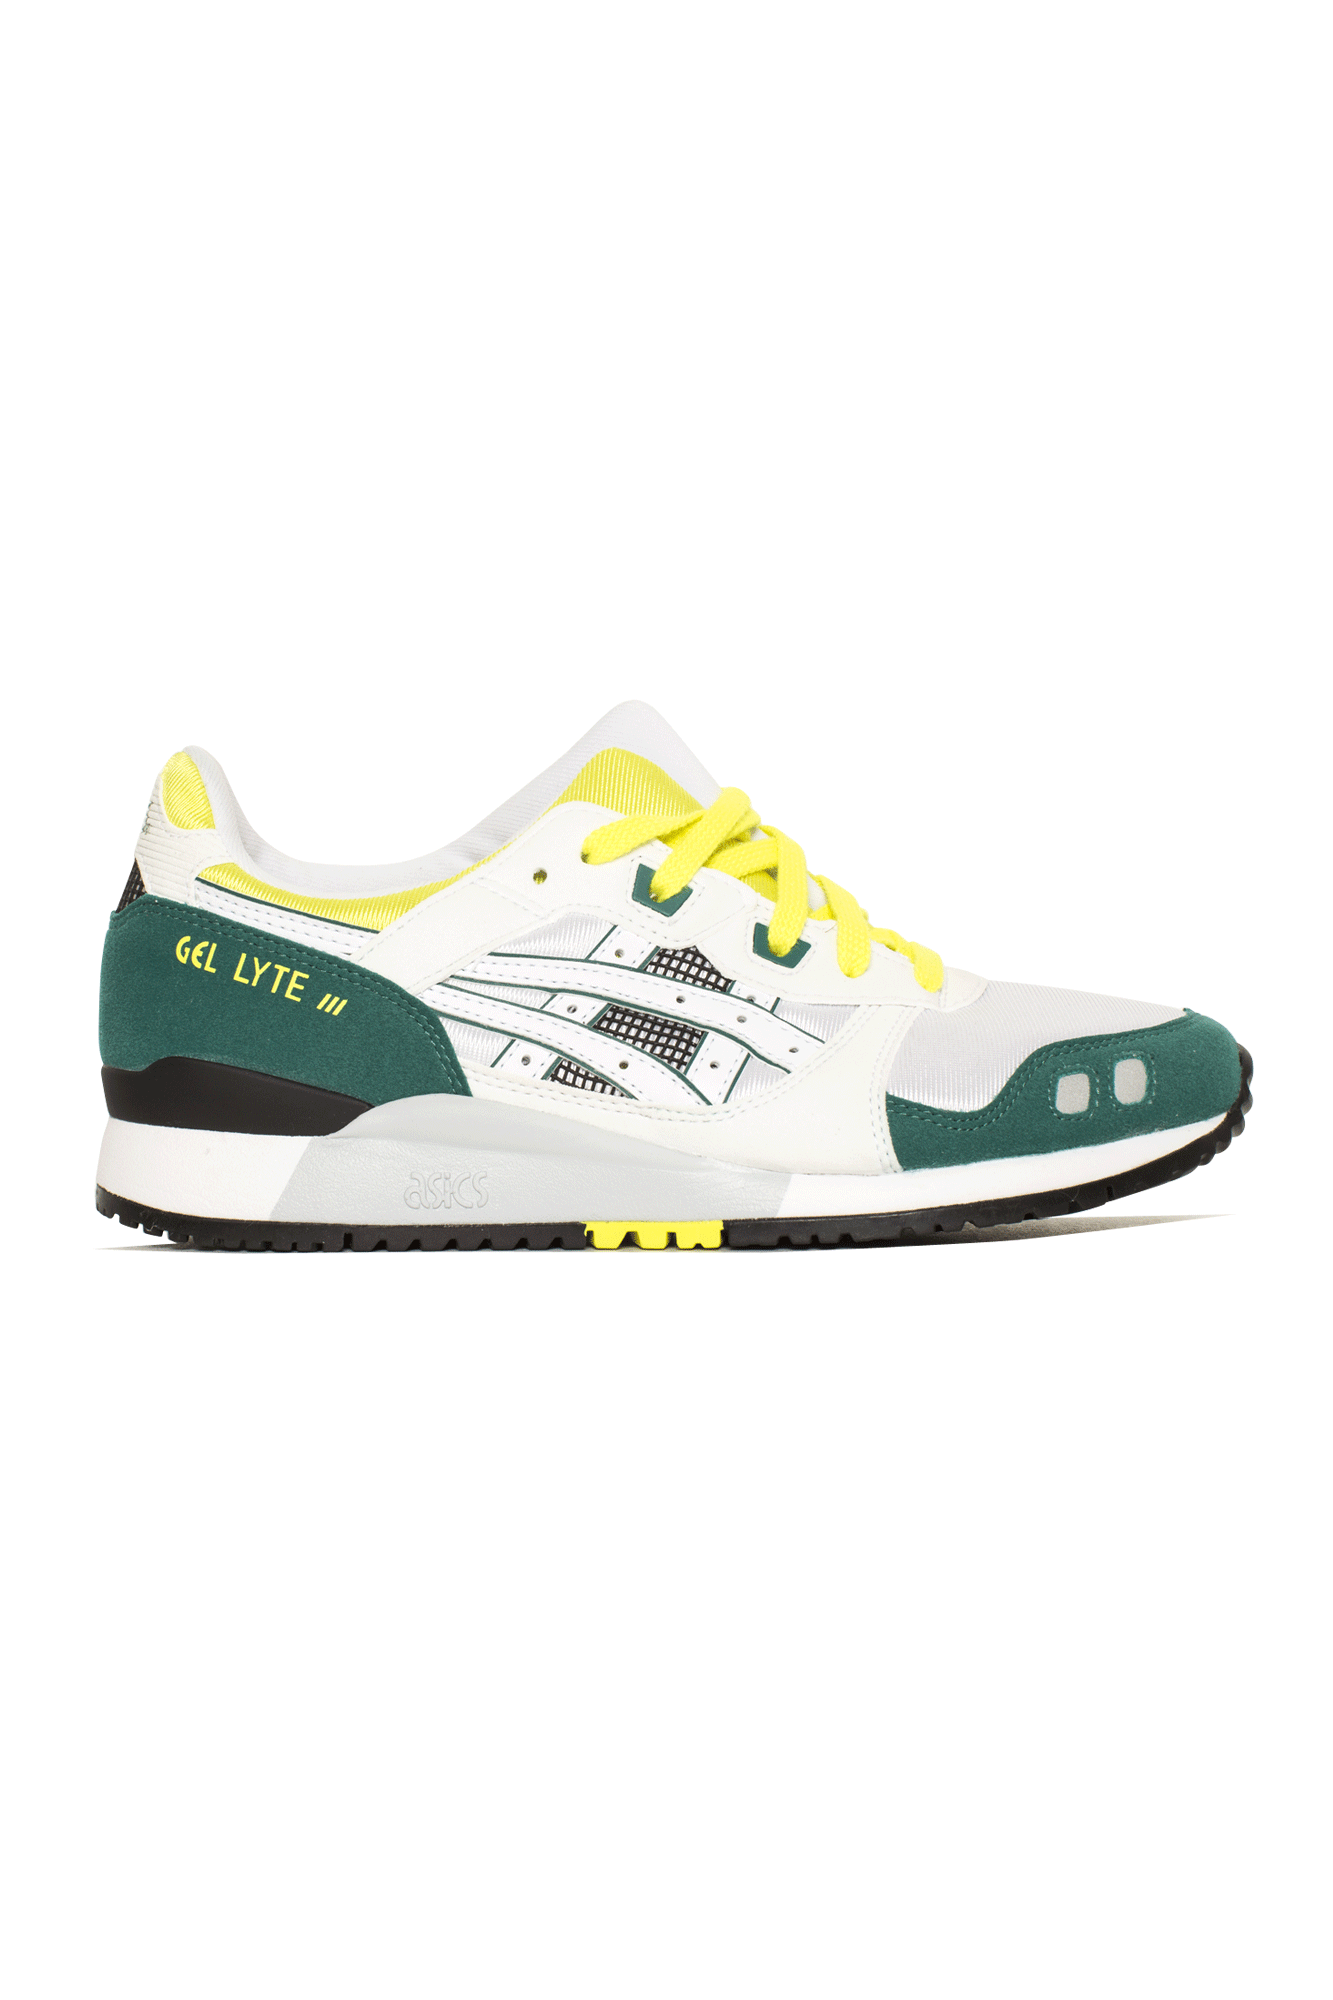 Gel-Lyte III OG White